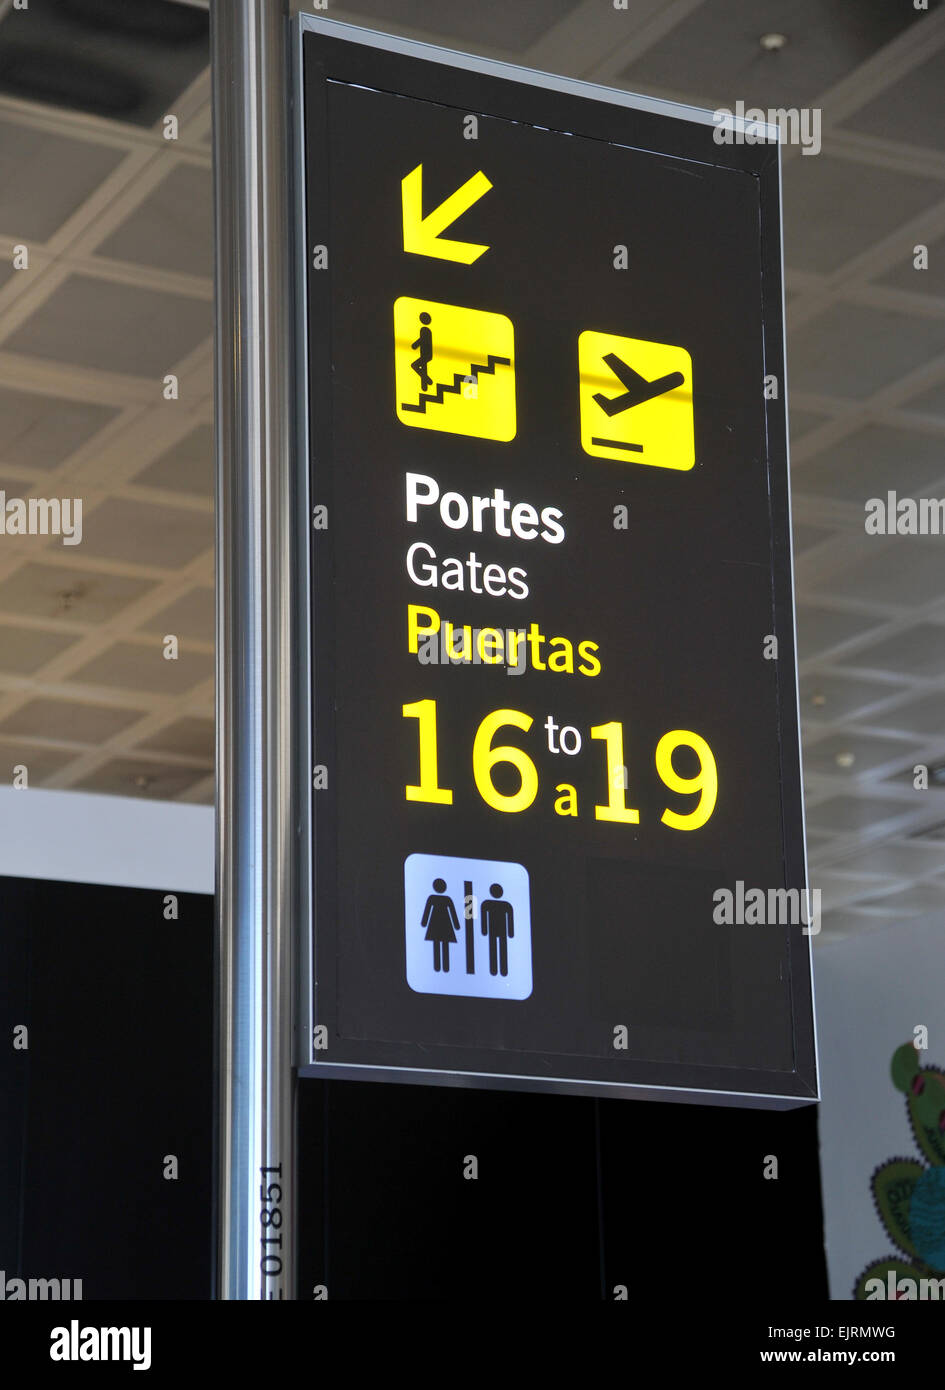 Departure gate sign in Barcelona Airport, Spain - Stock Image